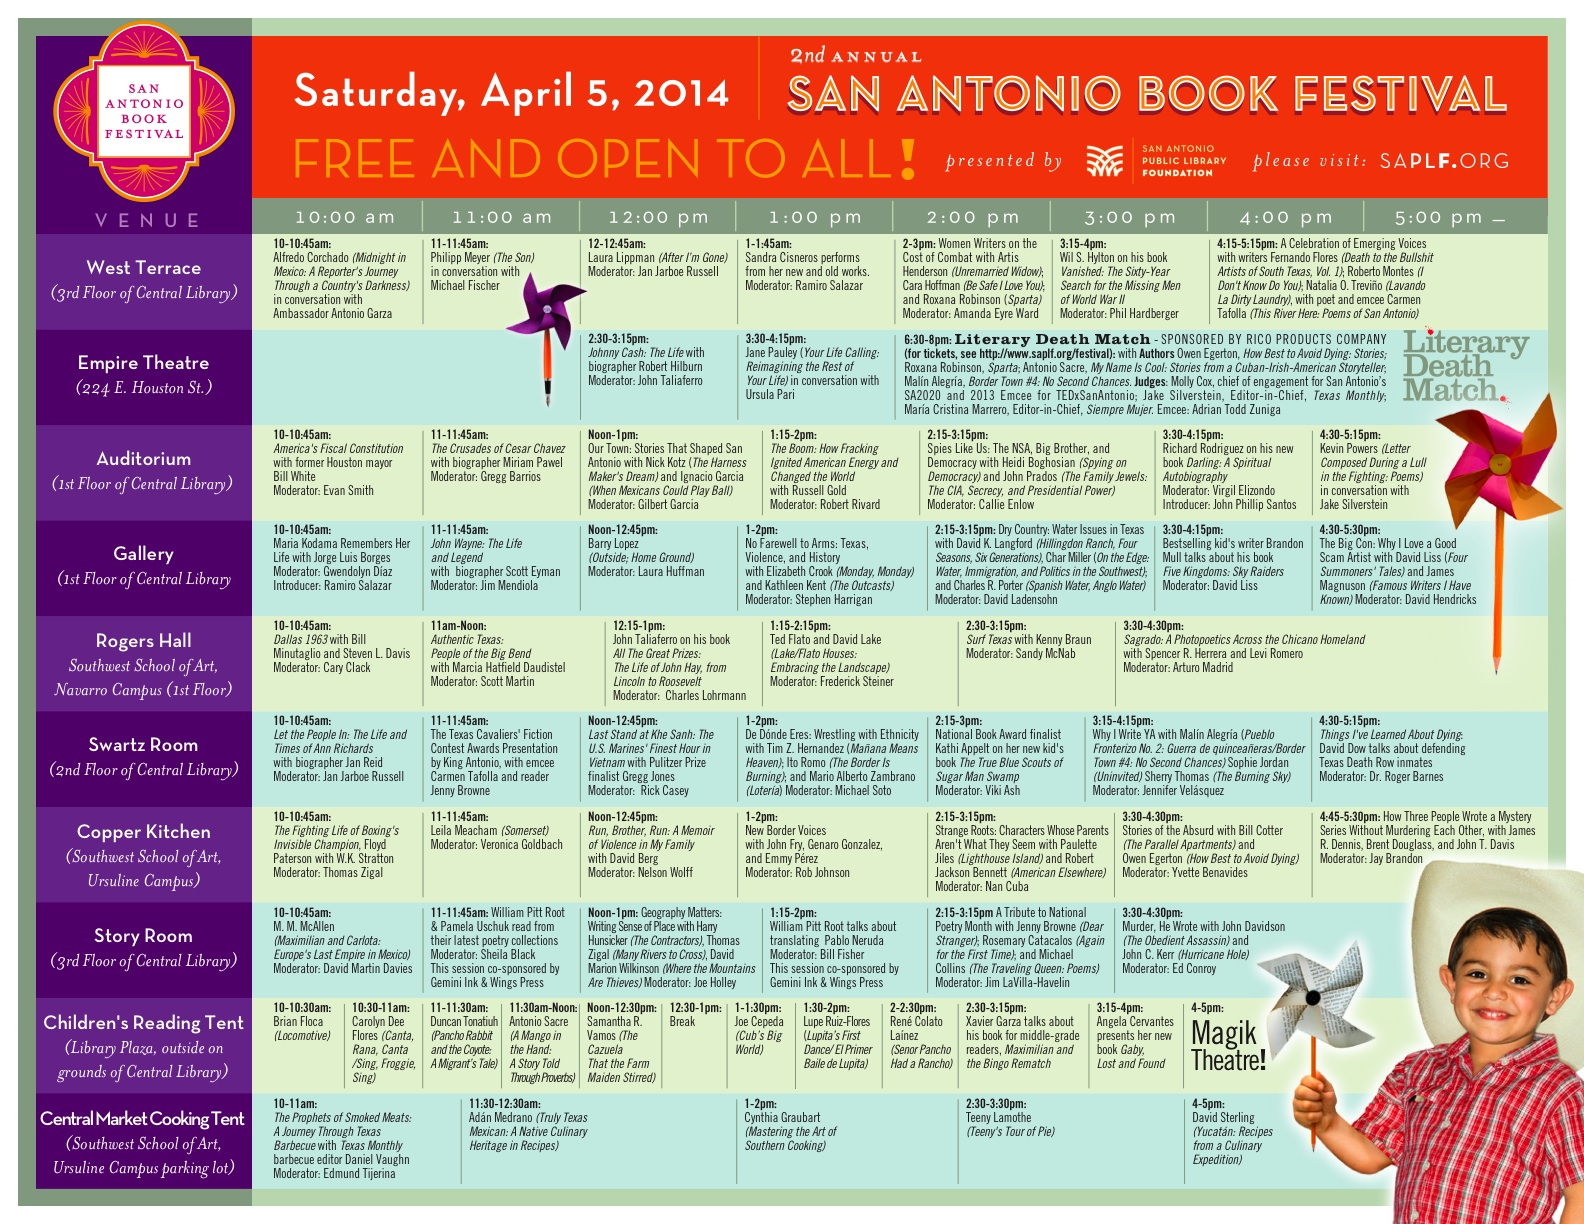 The 2014 San Antonio Book Festival Schedule. Click image to enlarge or download PDF here.